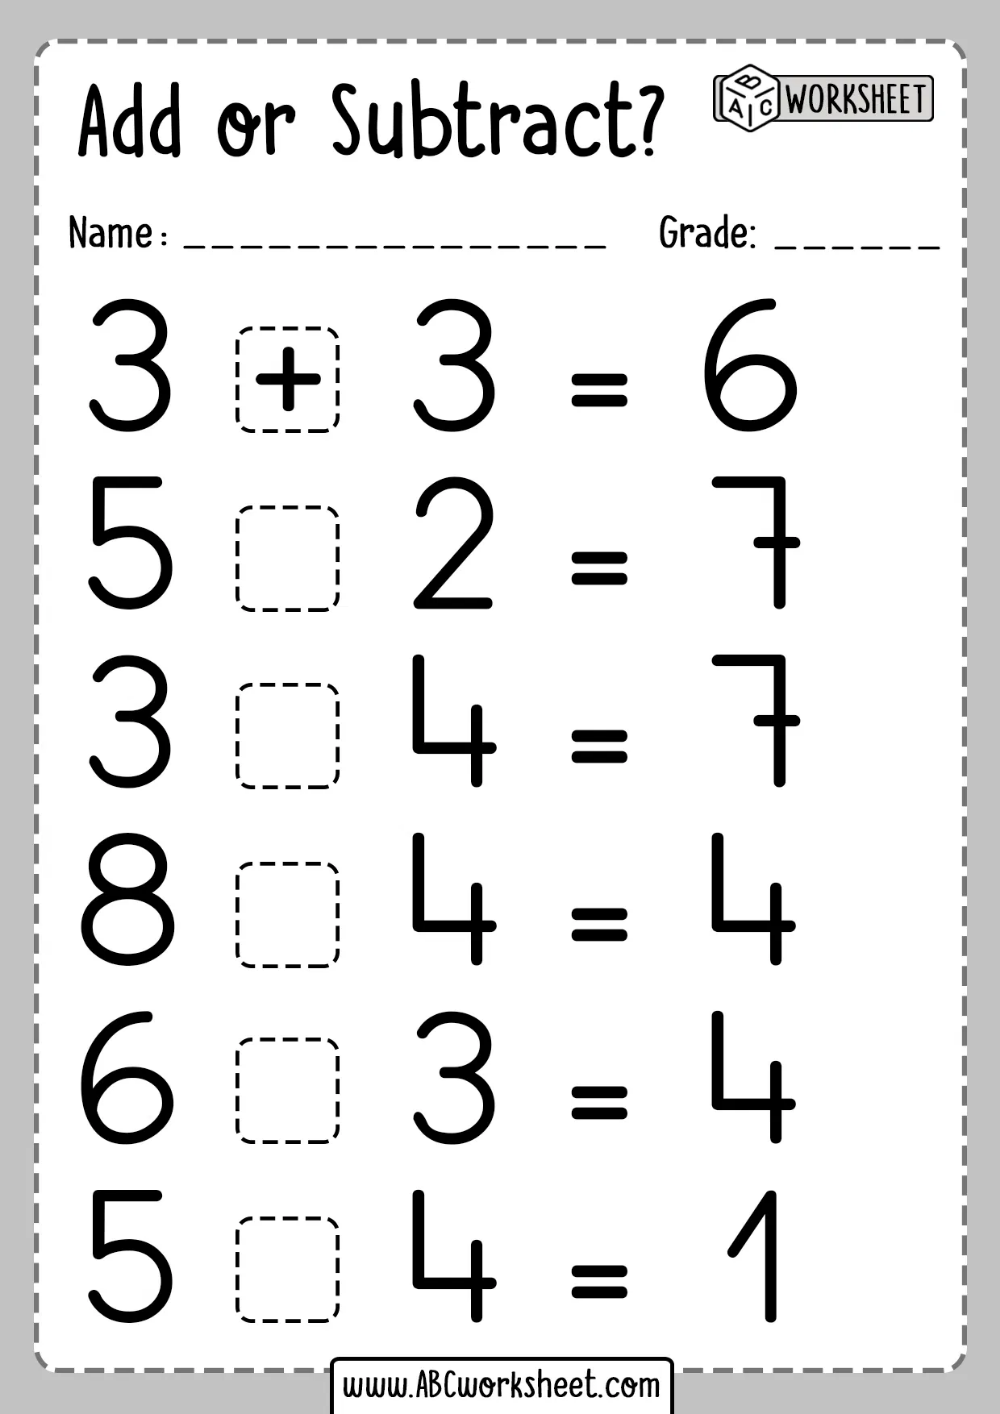 Single Digit Addition and Subtraction Worksheet   Addition and subtraction  worksheets [ 1414 x 1000 Pixel ]